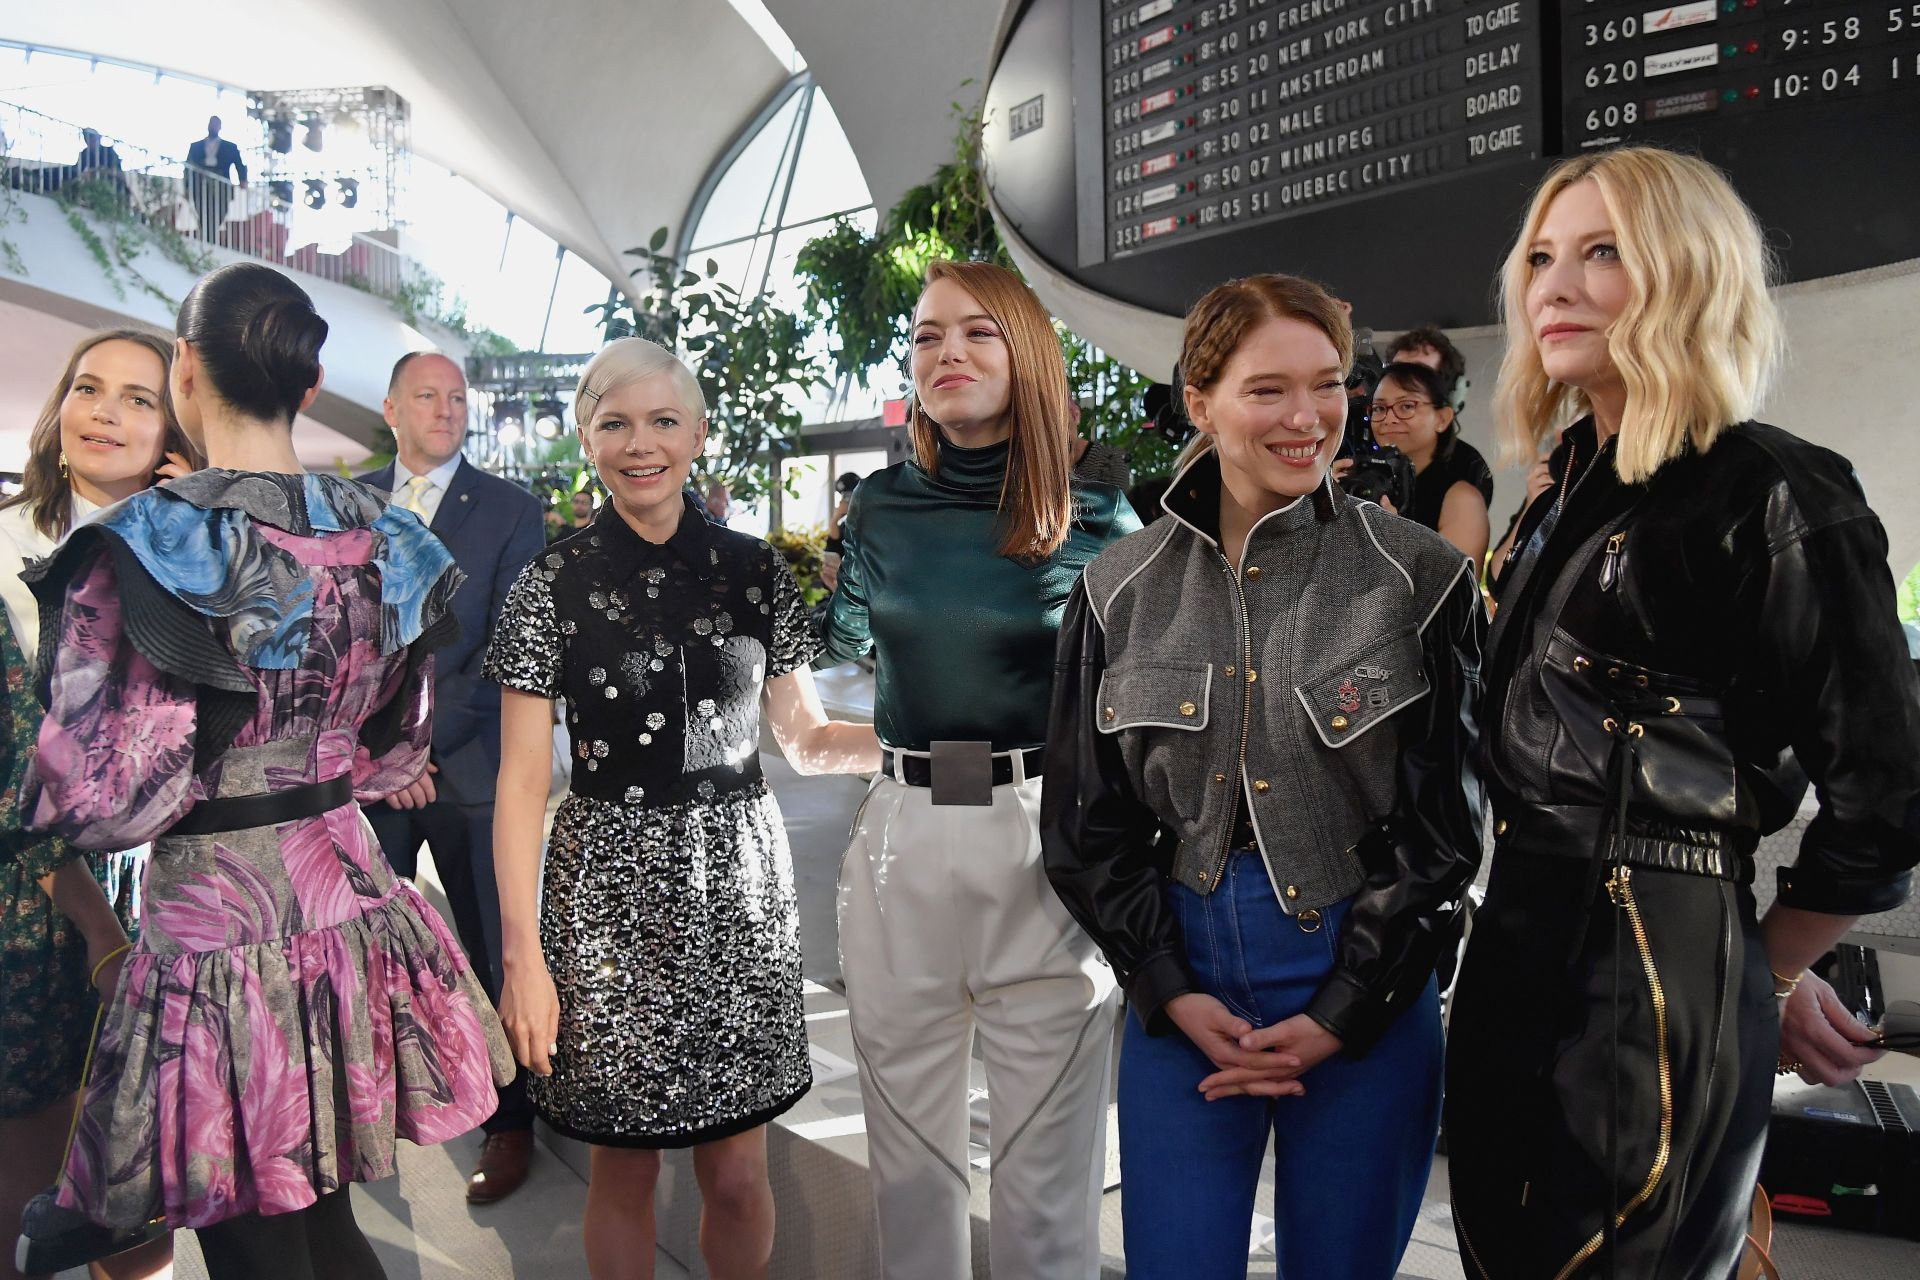 Michelle Williams, Emma Stone, Lea Seydoux and Cate Blanchett at the Louis Vuitton resort 2020 show. Image credit: Getty Images